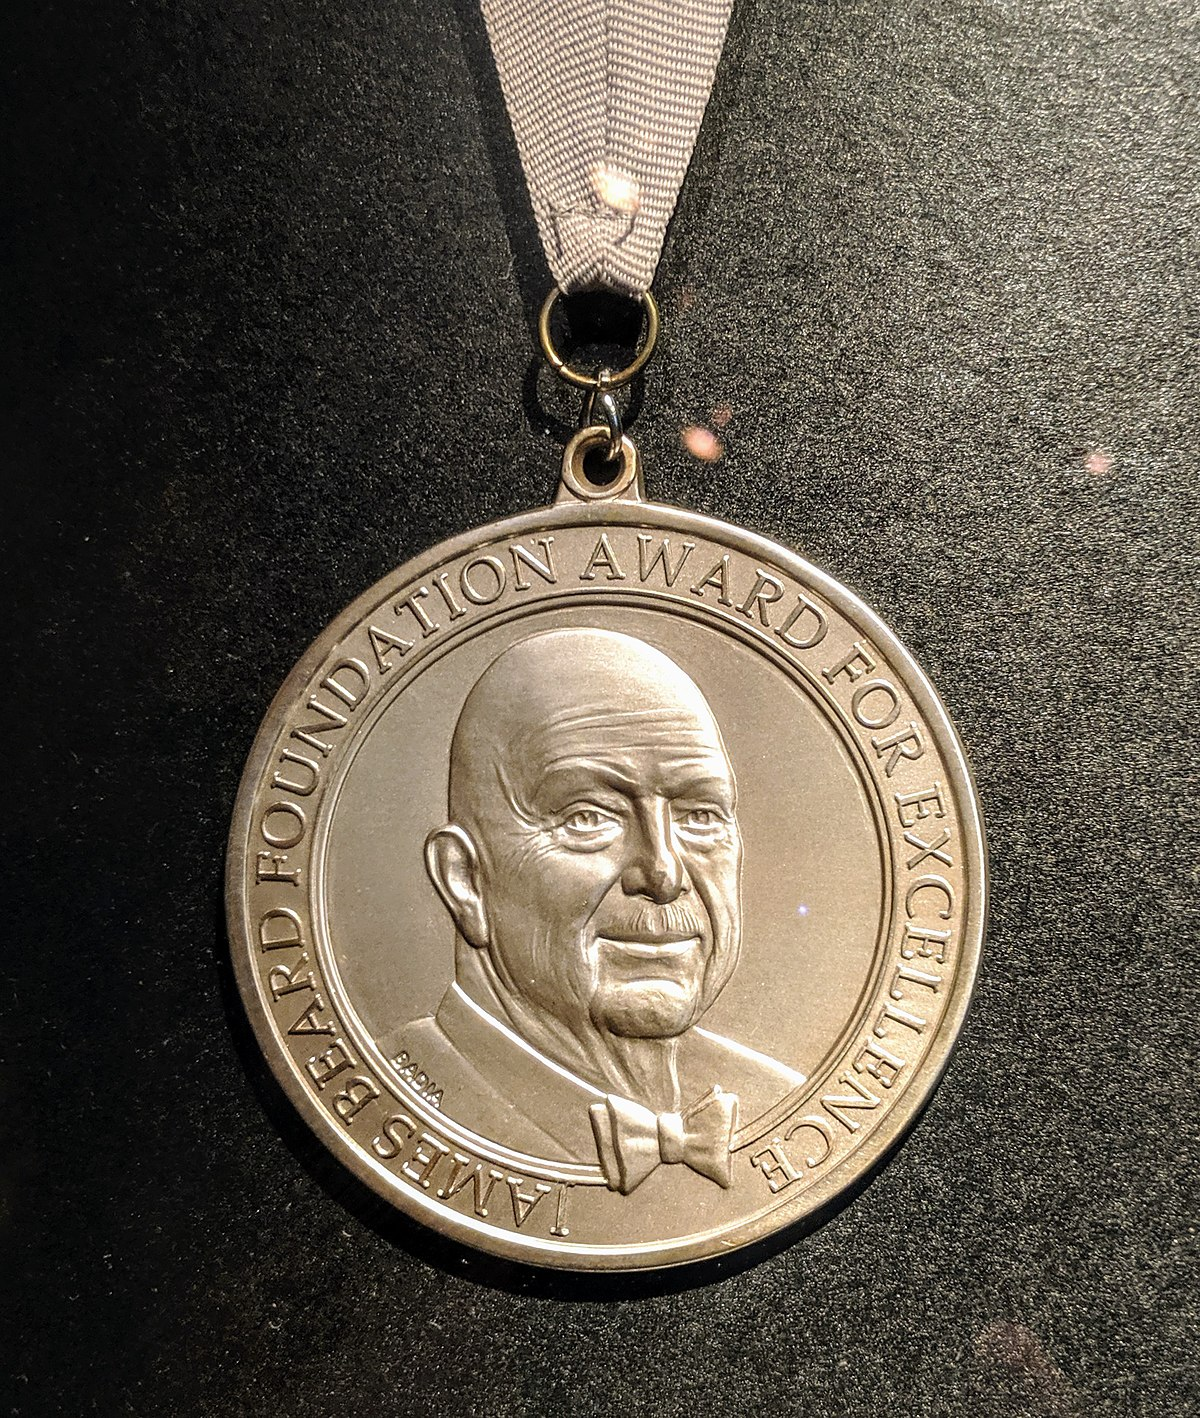 James Beard Foundation Award - Wikipedia